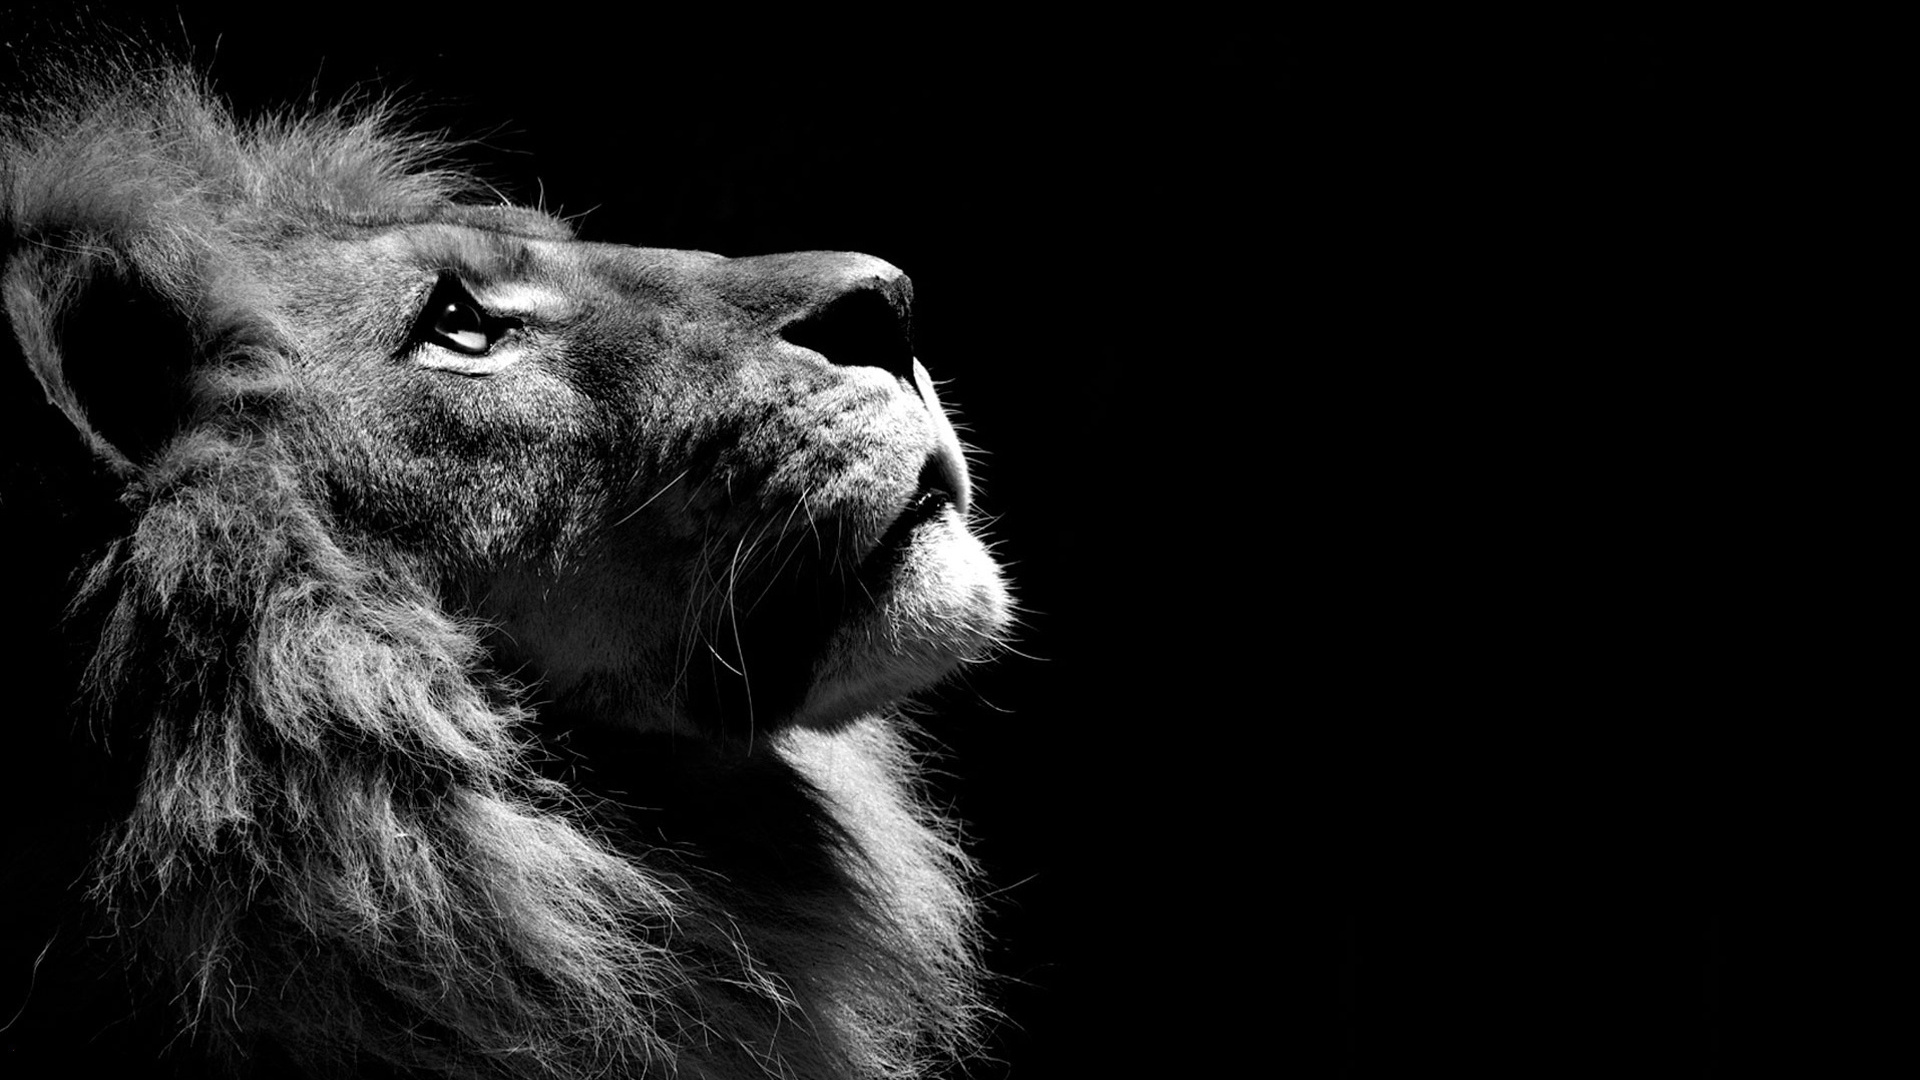 1920x1080 Lion Black And White Laptop Full Hd 1080p Hd 4k Wallpapers Images Backgrounds Photos And Pictures